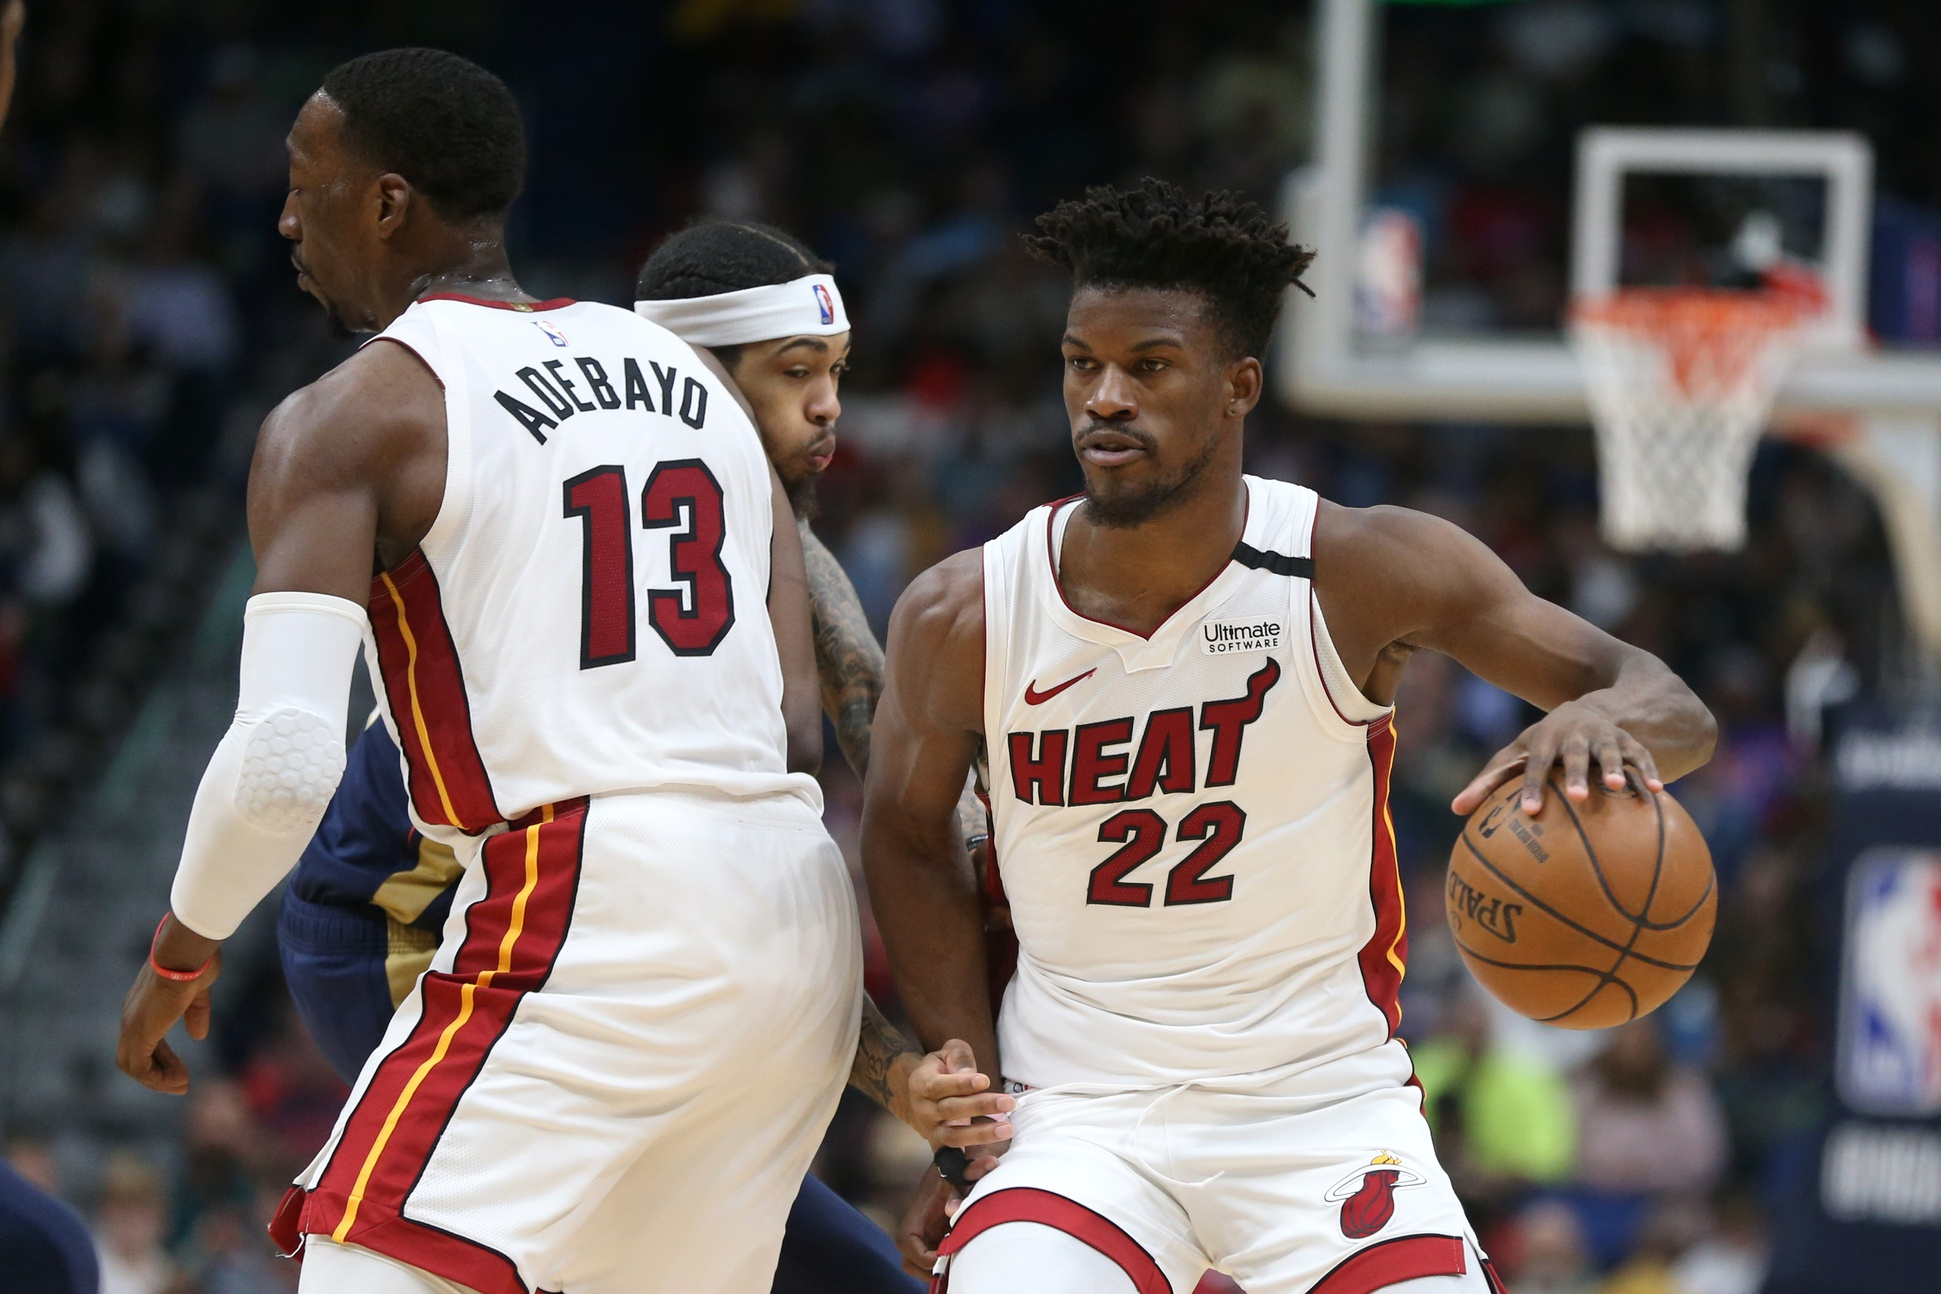 Miami Heat's Jimmy Butler and Bam Adebayo among league's top 20 players according to formula